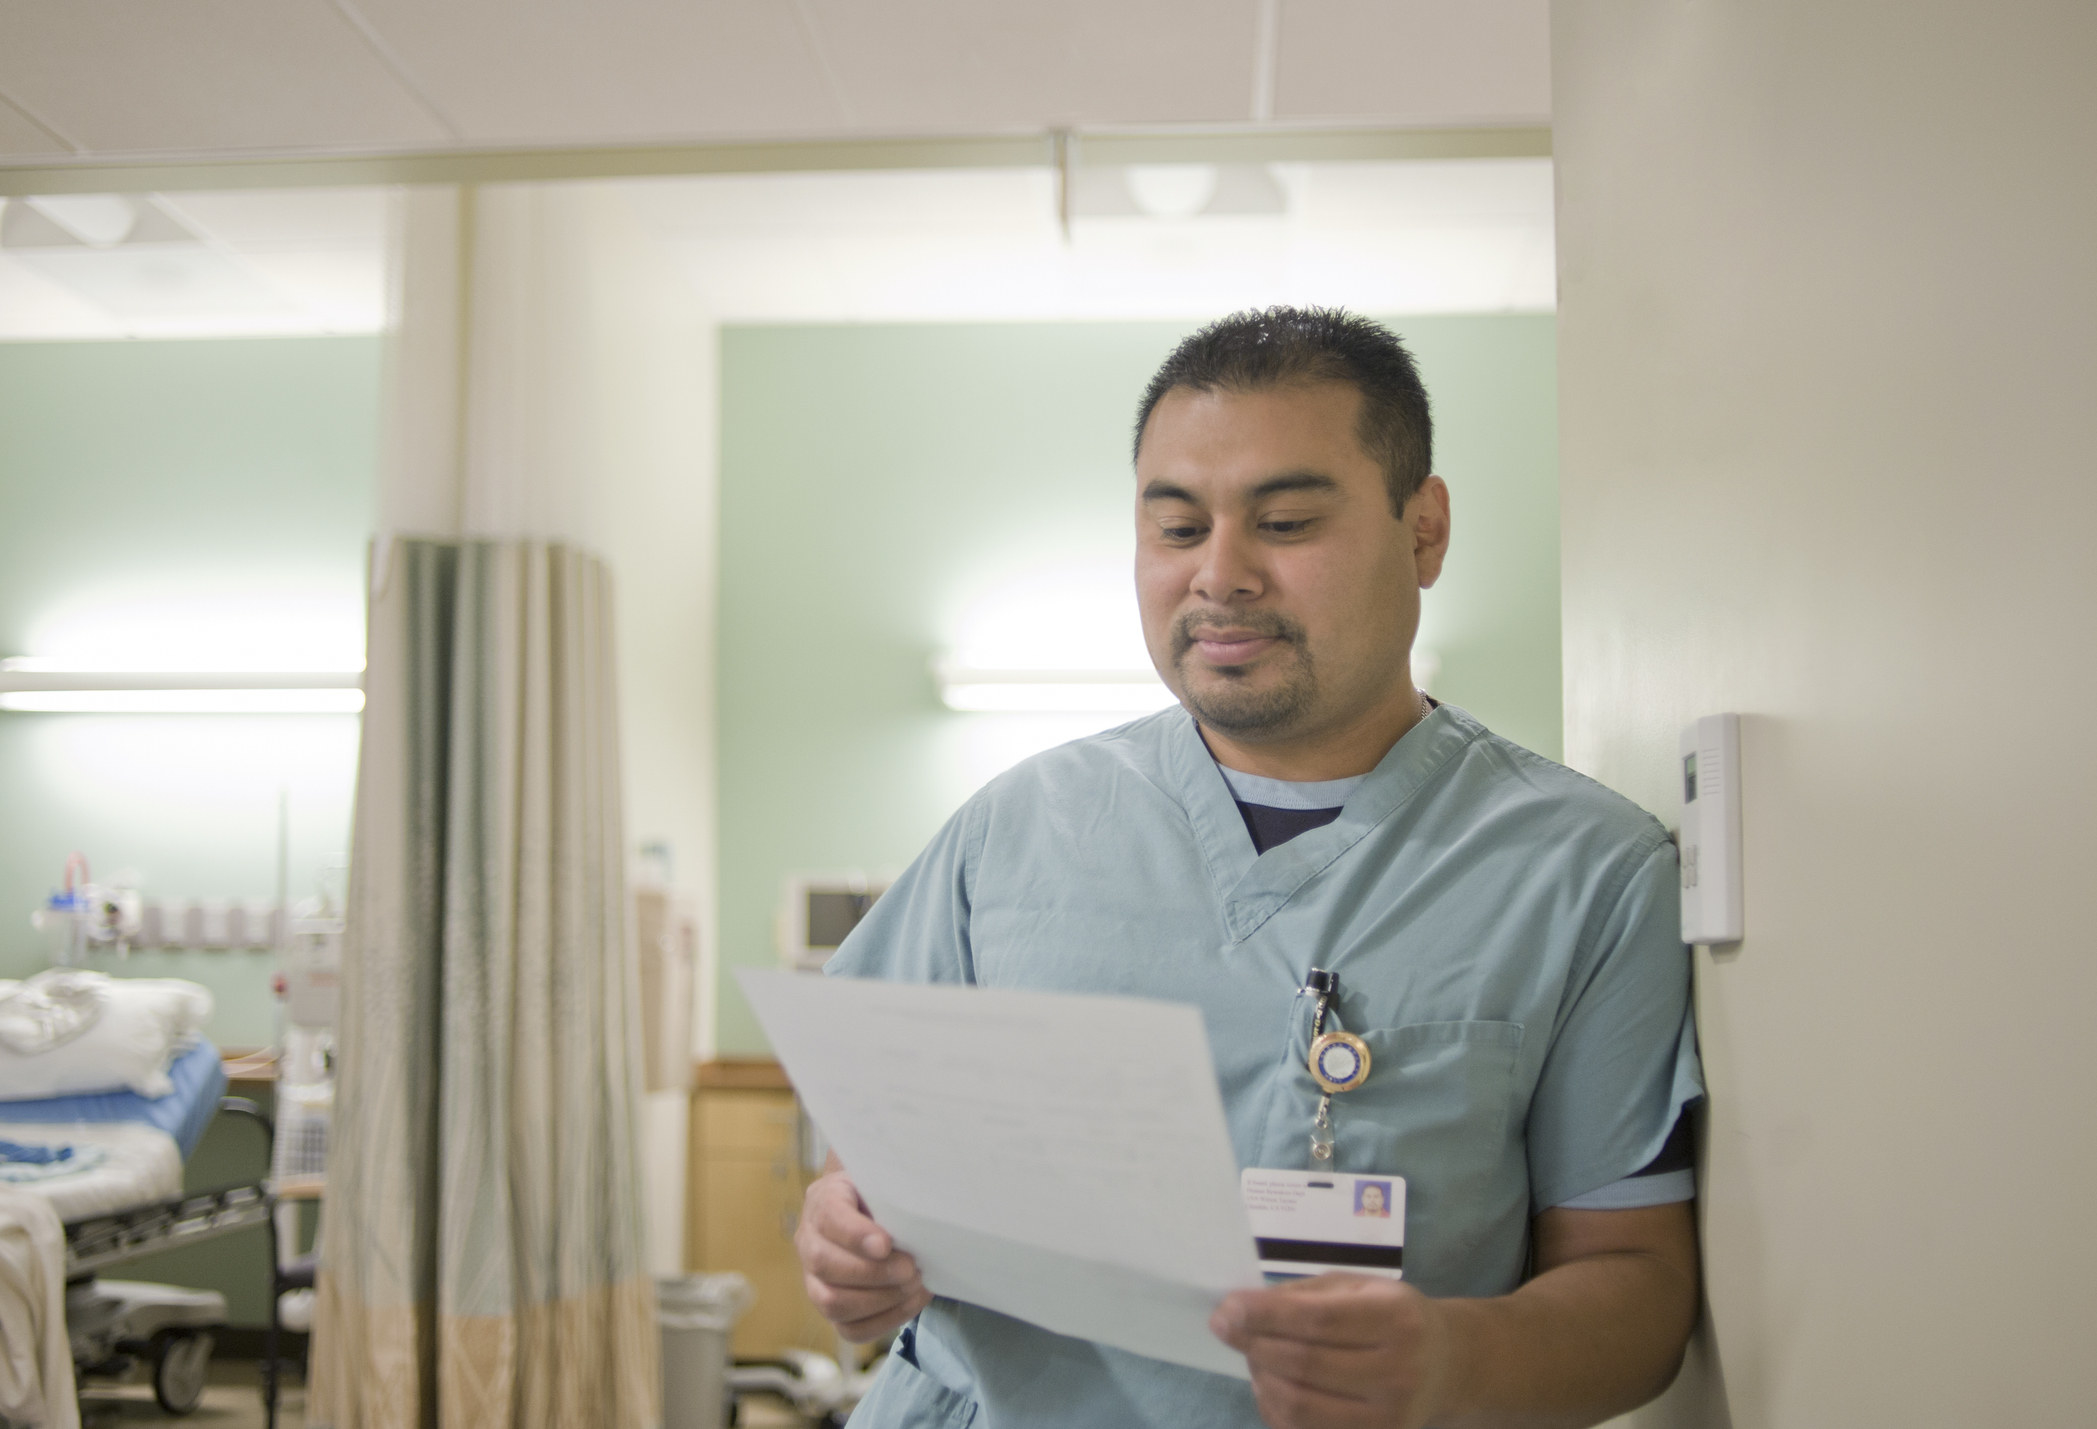 A nurse looking over paperwork in a hospital